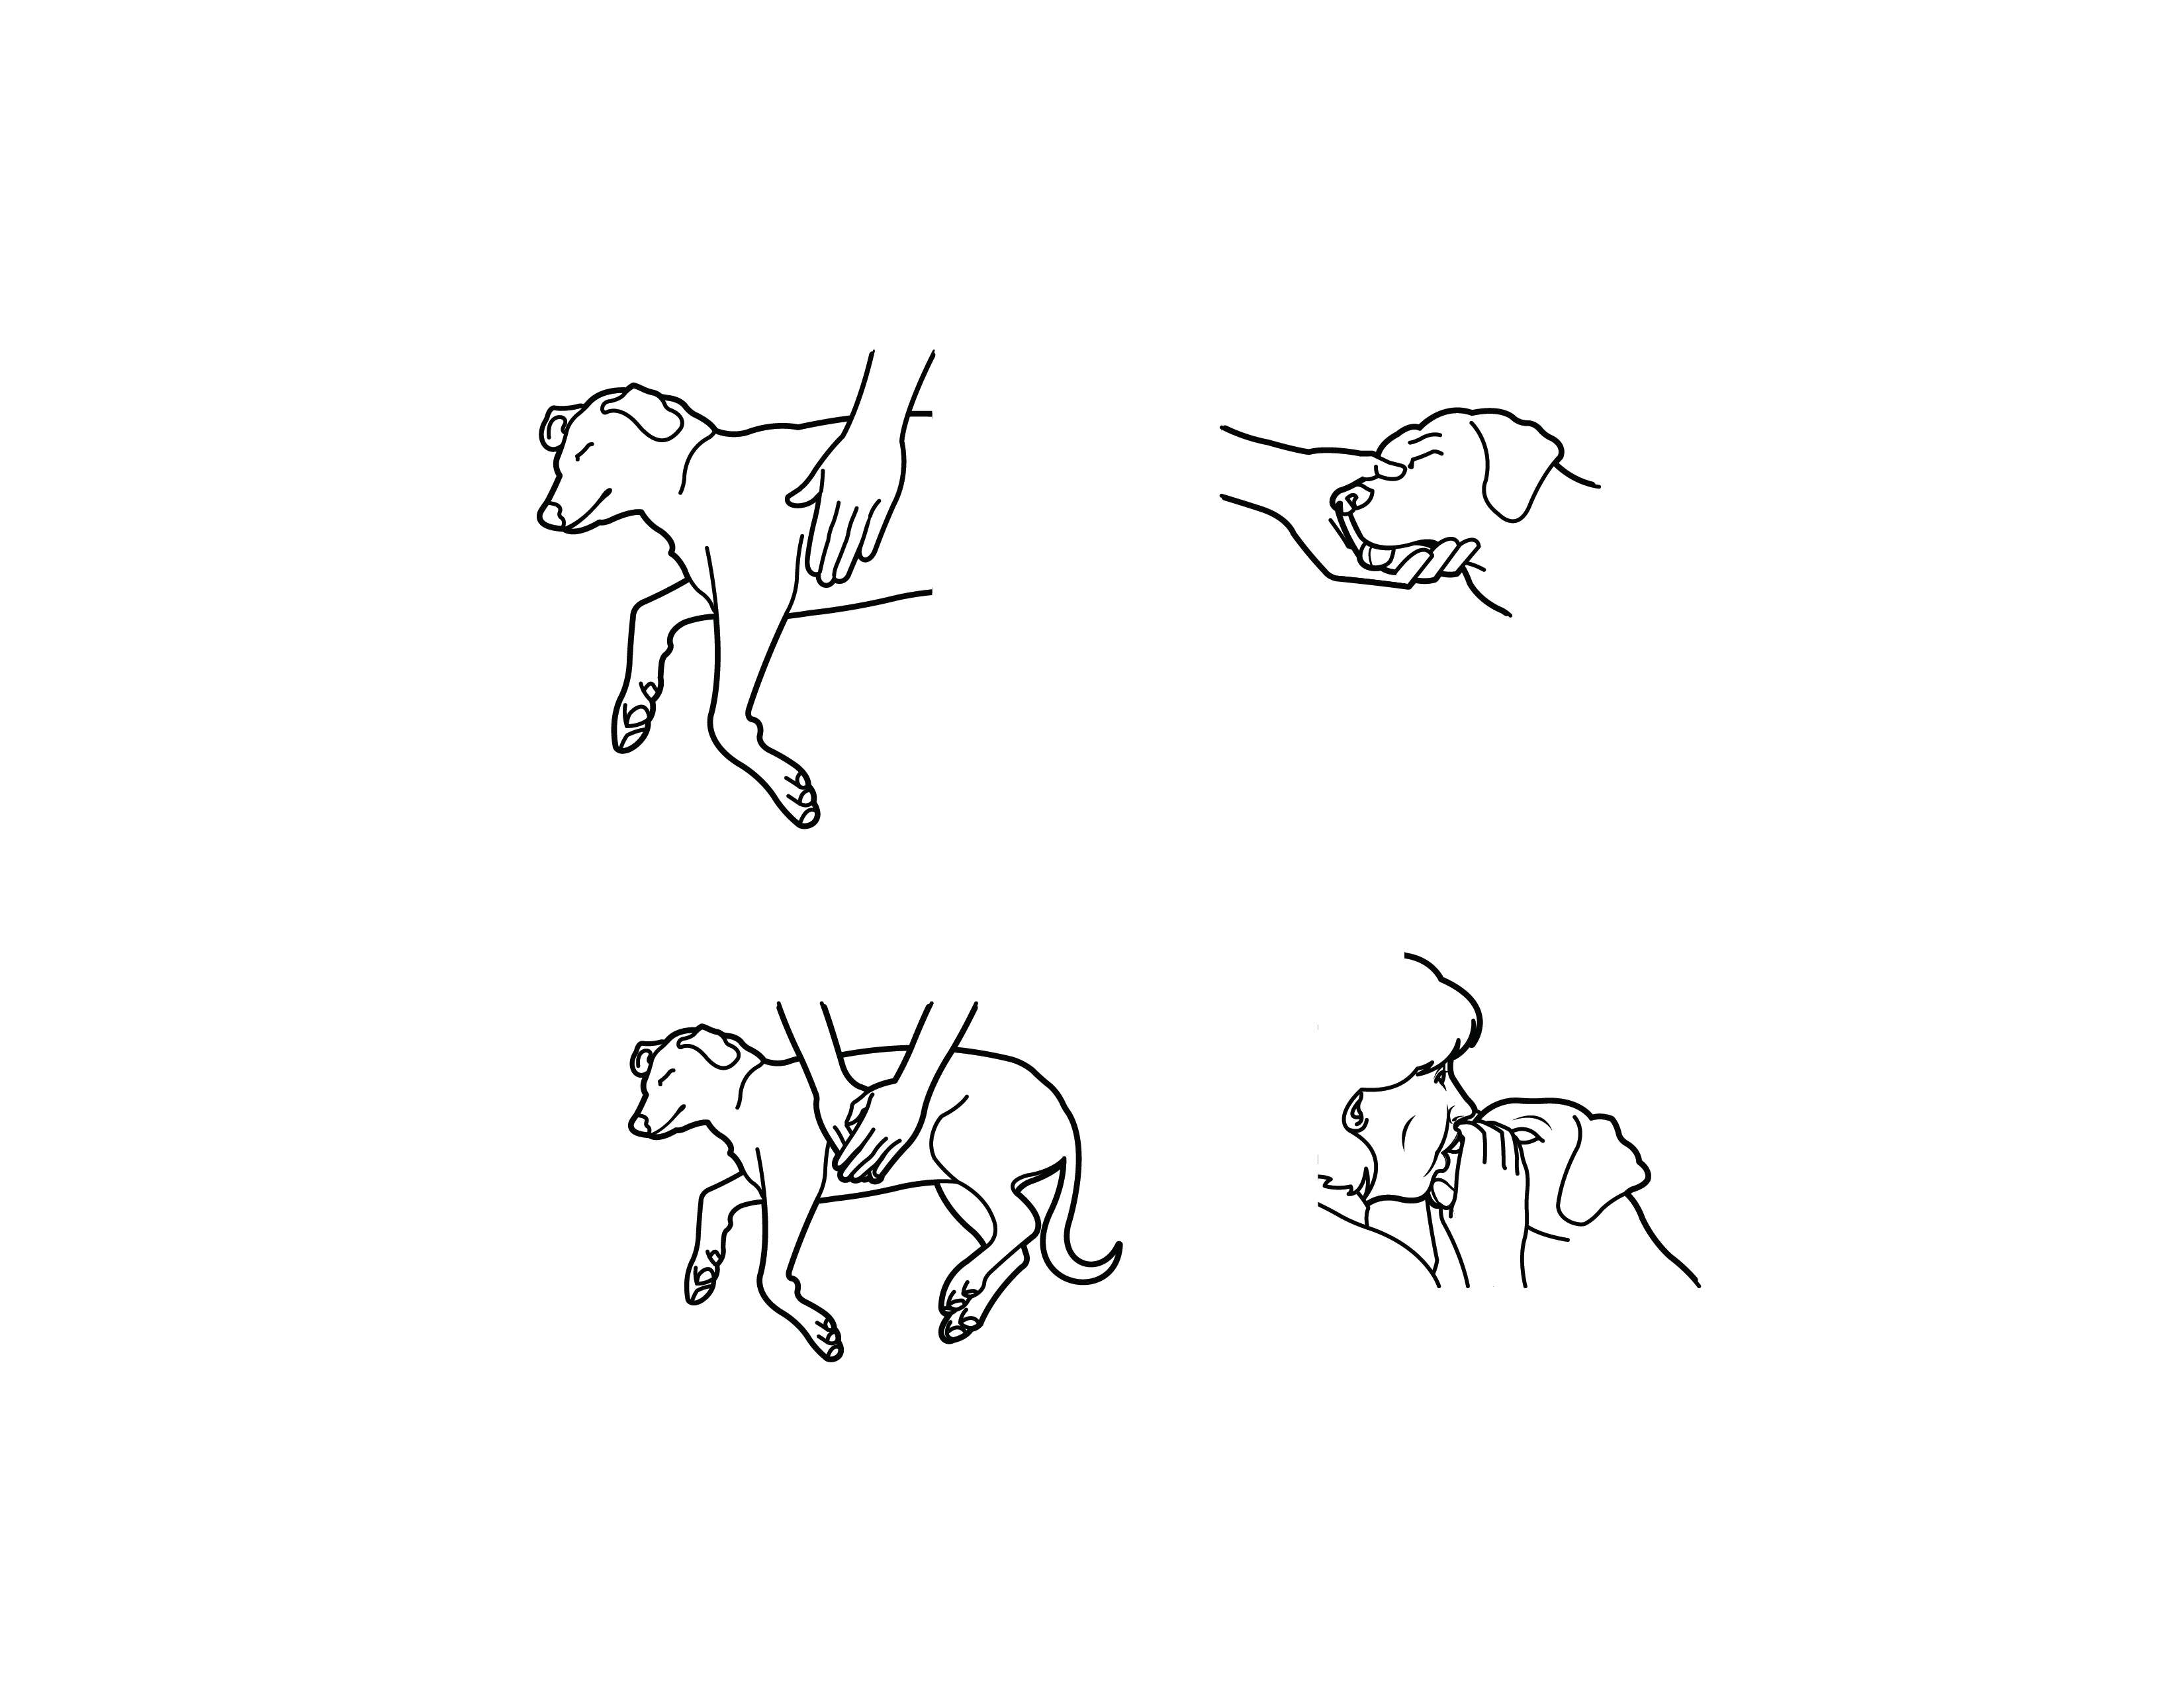 Step By Step Instructions To Give Your Dog Cpr